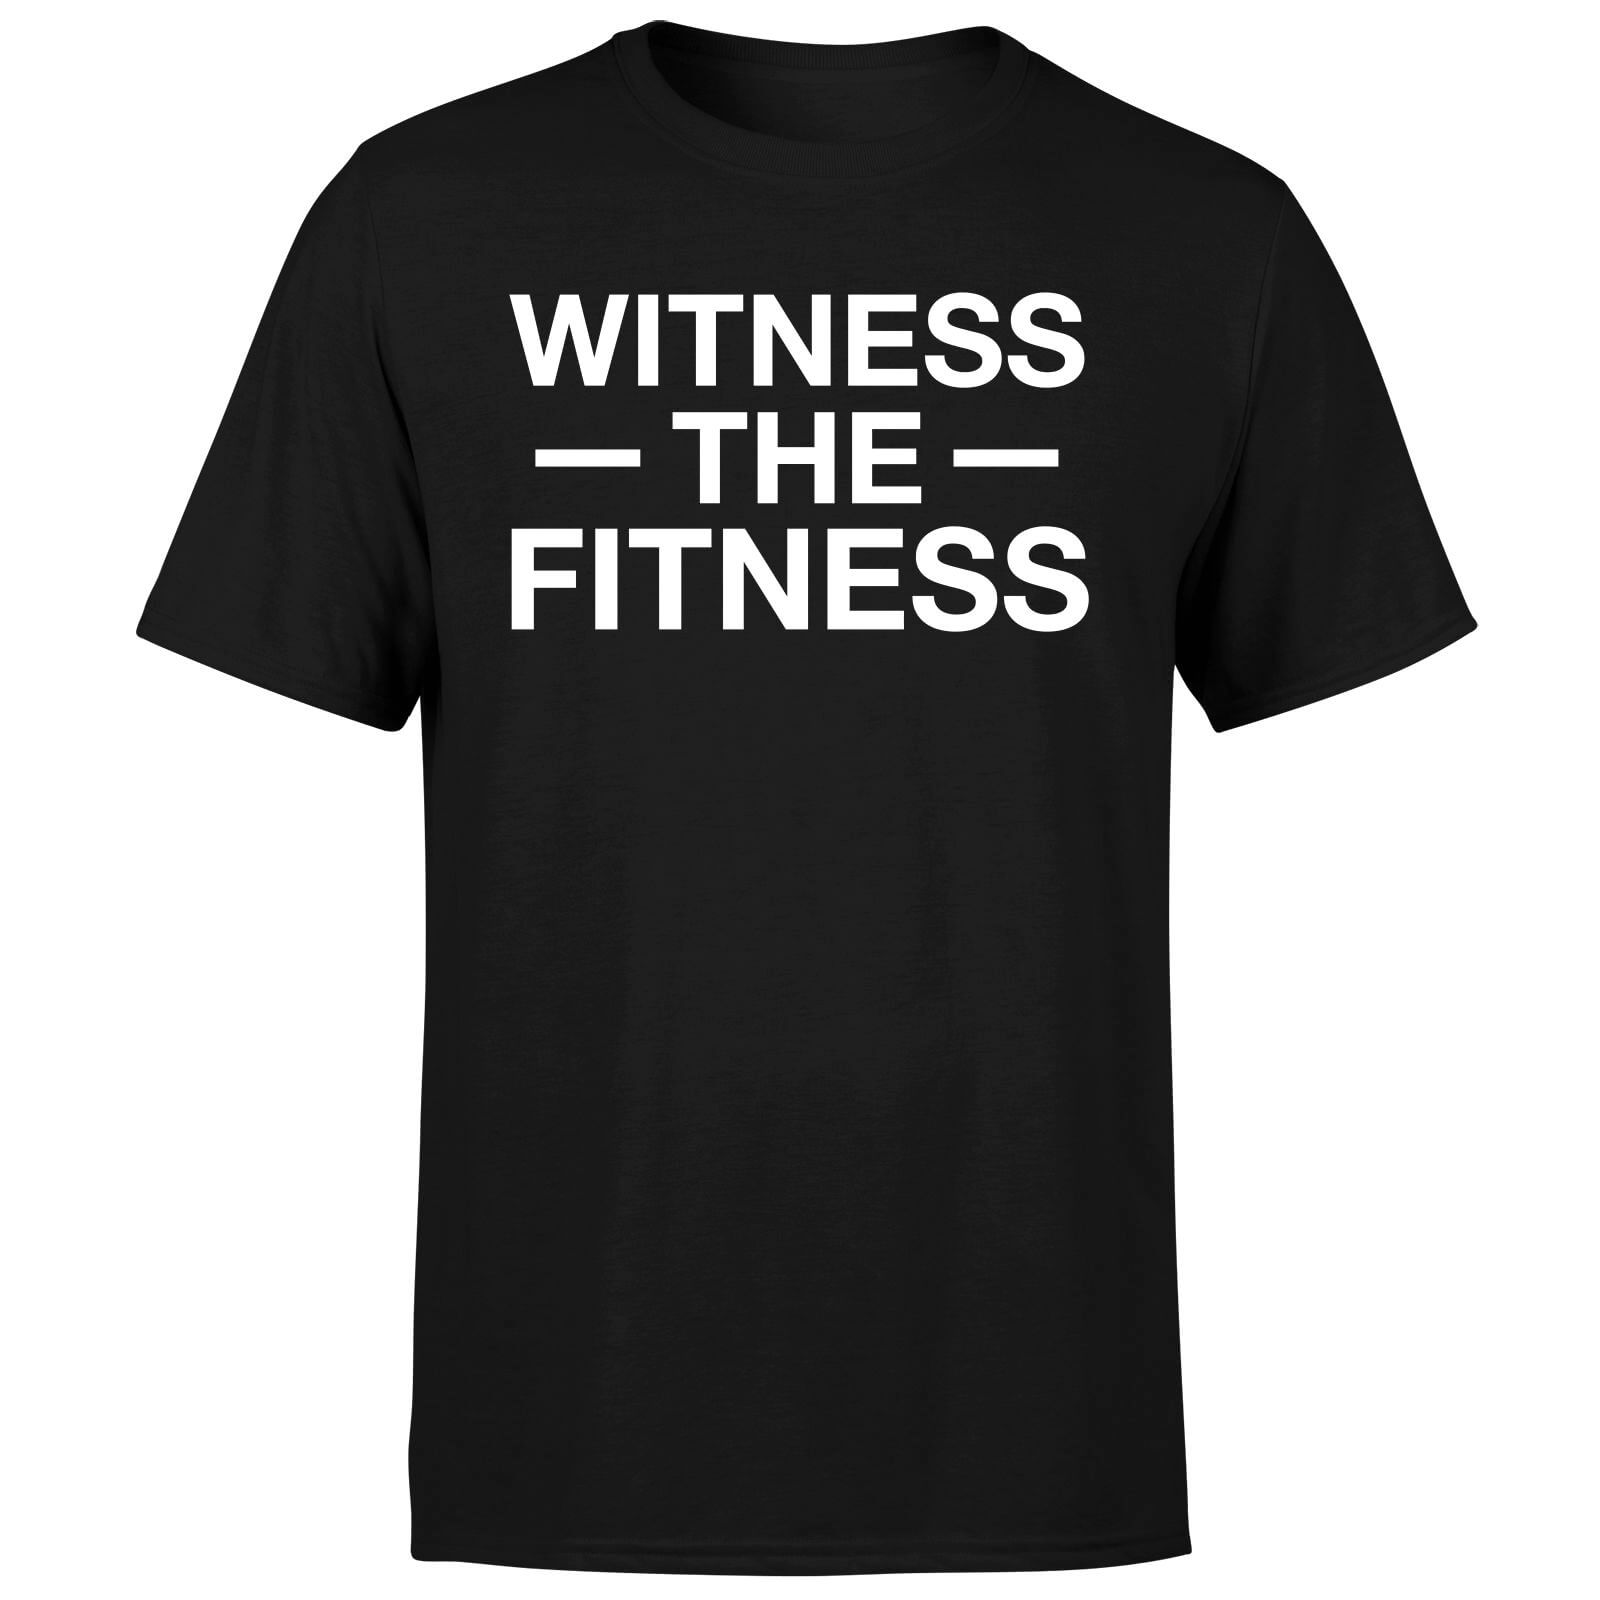 Witness the Fitness T-Shirt - Black